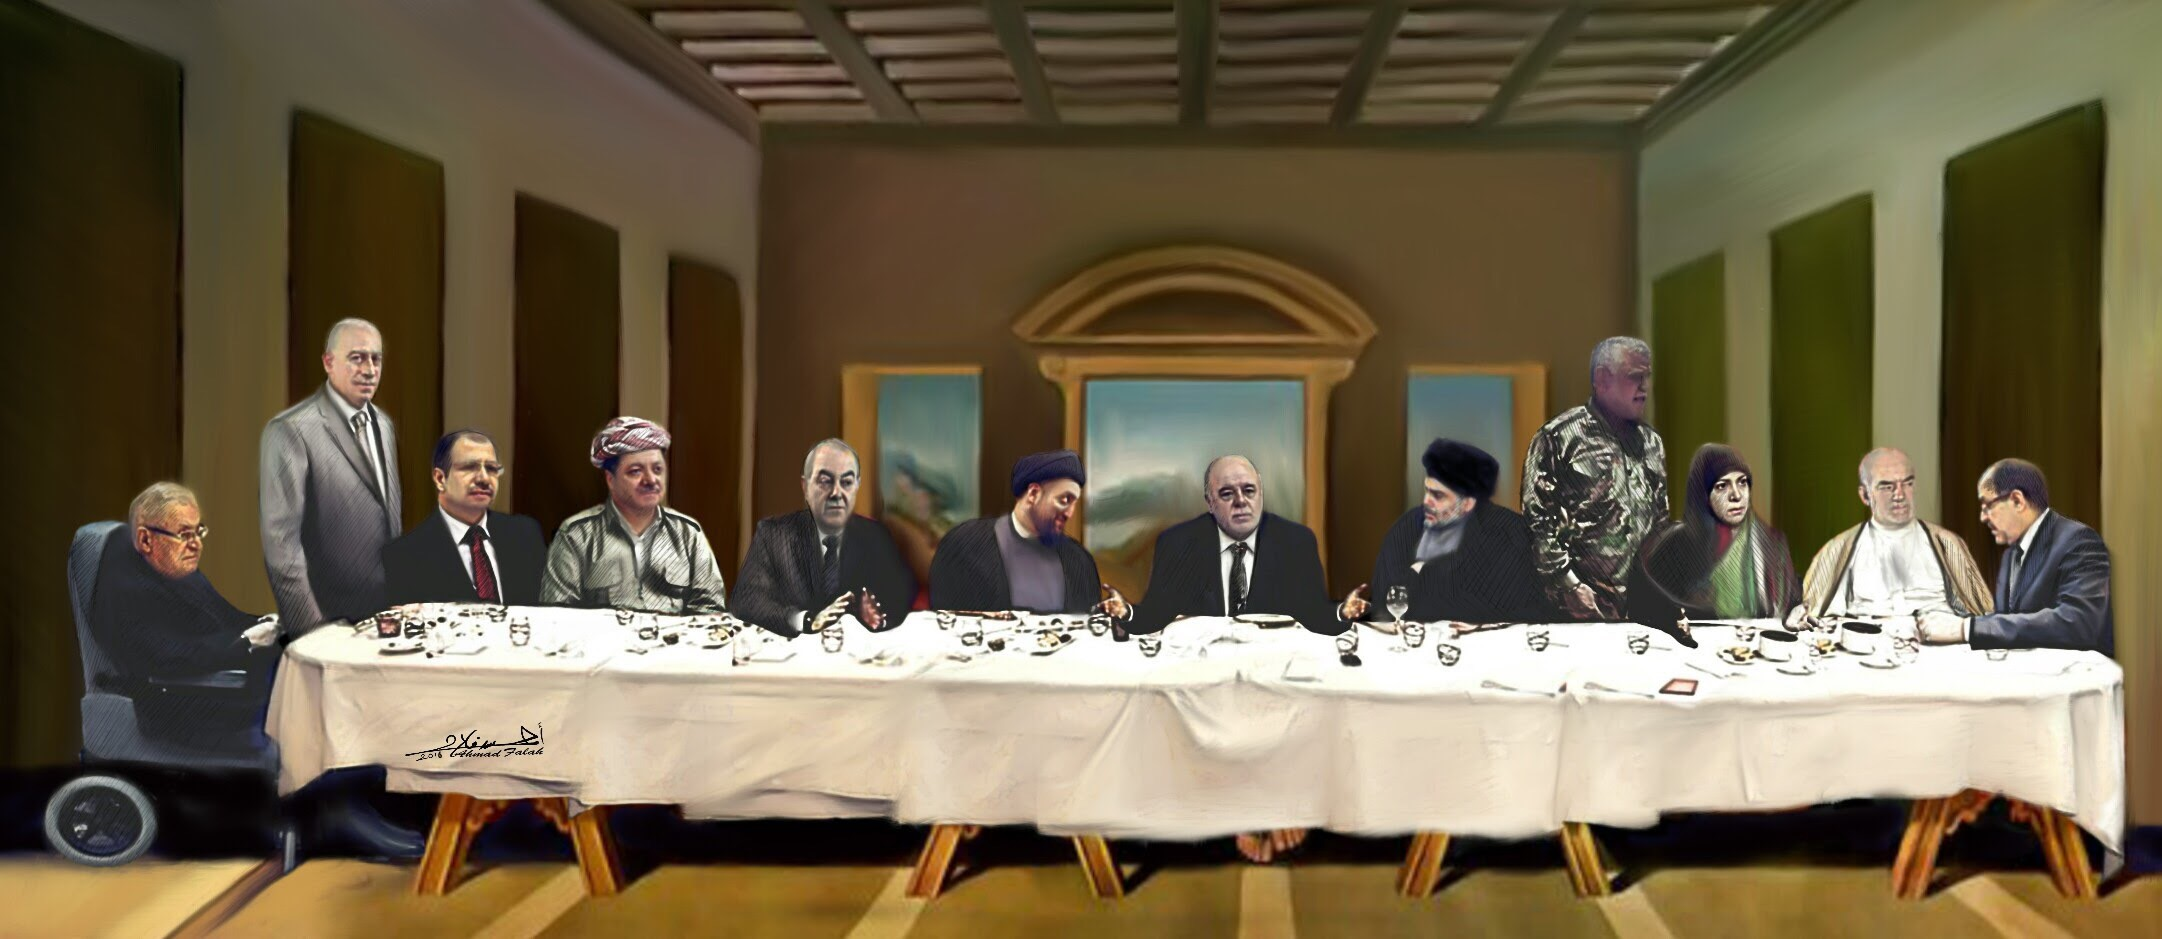 Ahmed Falah's parody of Leonardo da Vinci's The Last Supper, Falah posted his work a day before Shia cleric Muqtada Al Sadr's ultimatum to PM Haider Abadi and parliament session was over, suggesting that their meeting that night to reach a solution over the reforms could be their last one. Many Iraqi Christians reacted to this art piece and for a while caused facebook to suspend Falah's account. Photo.